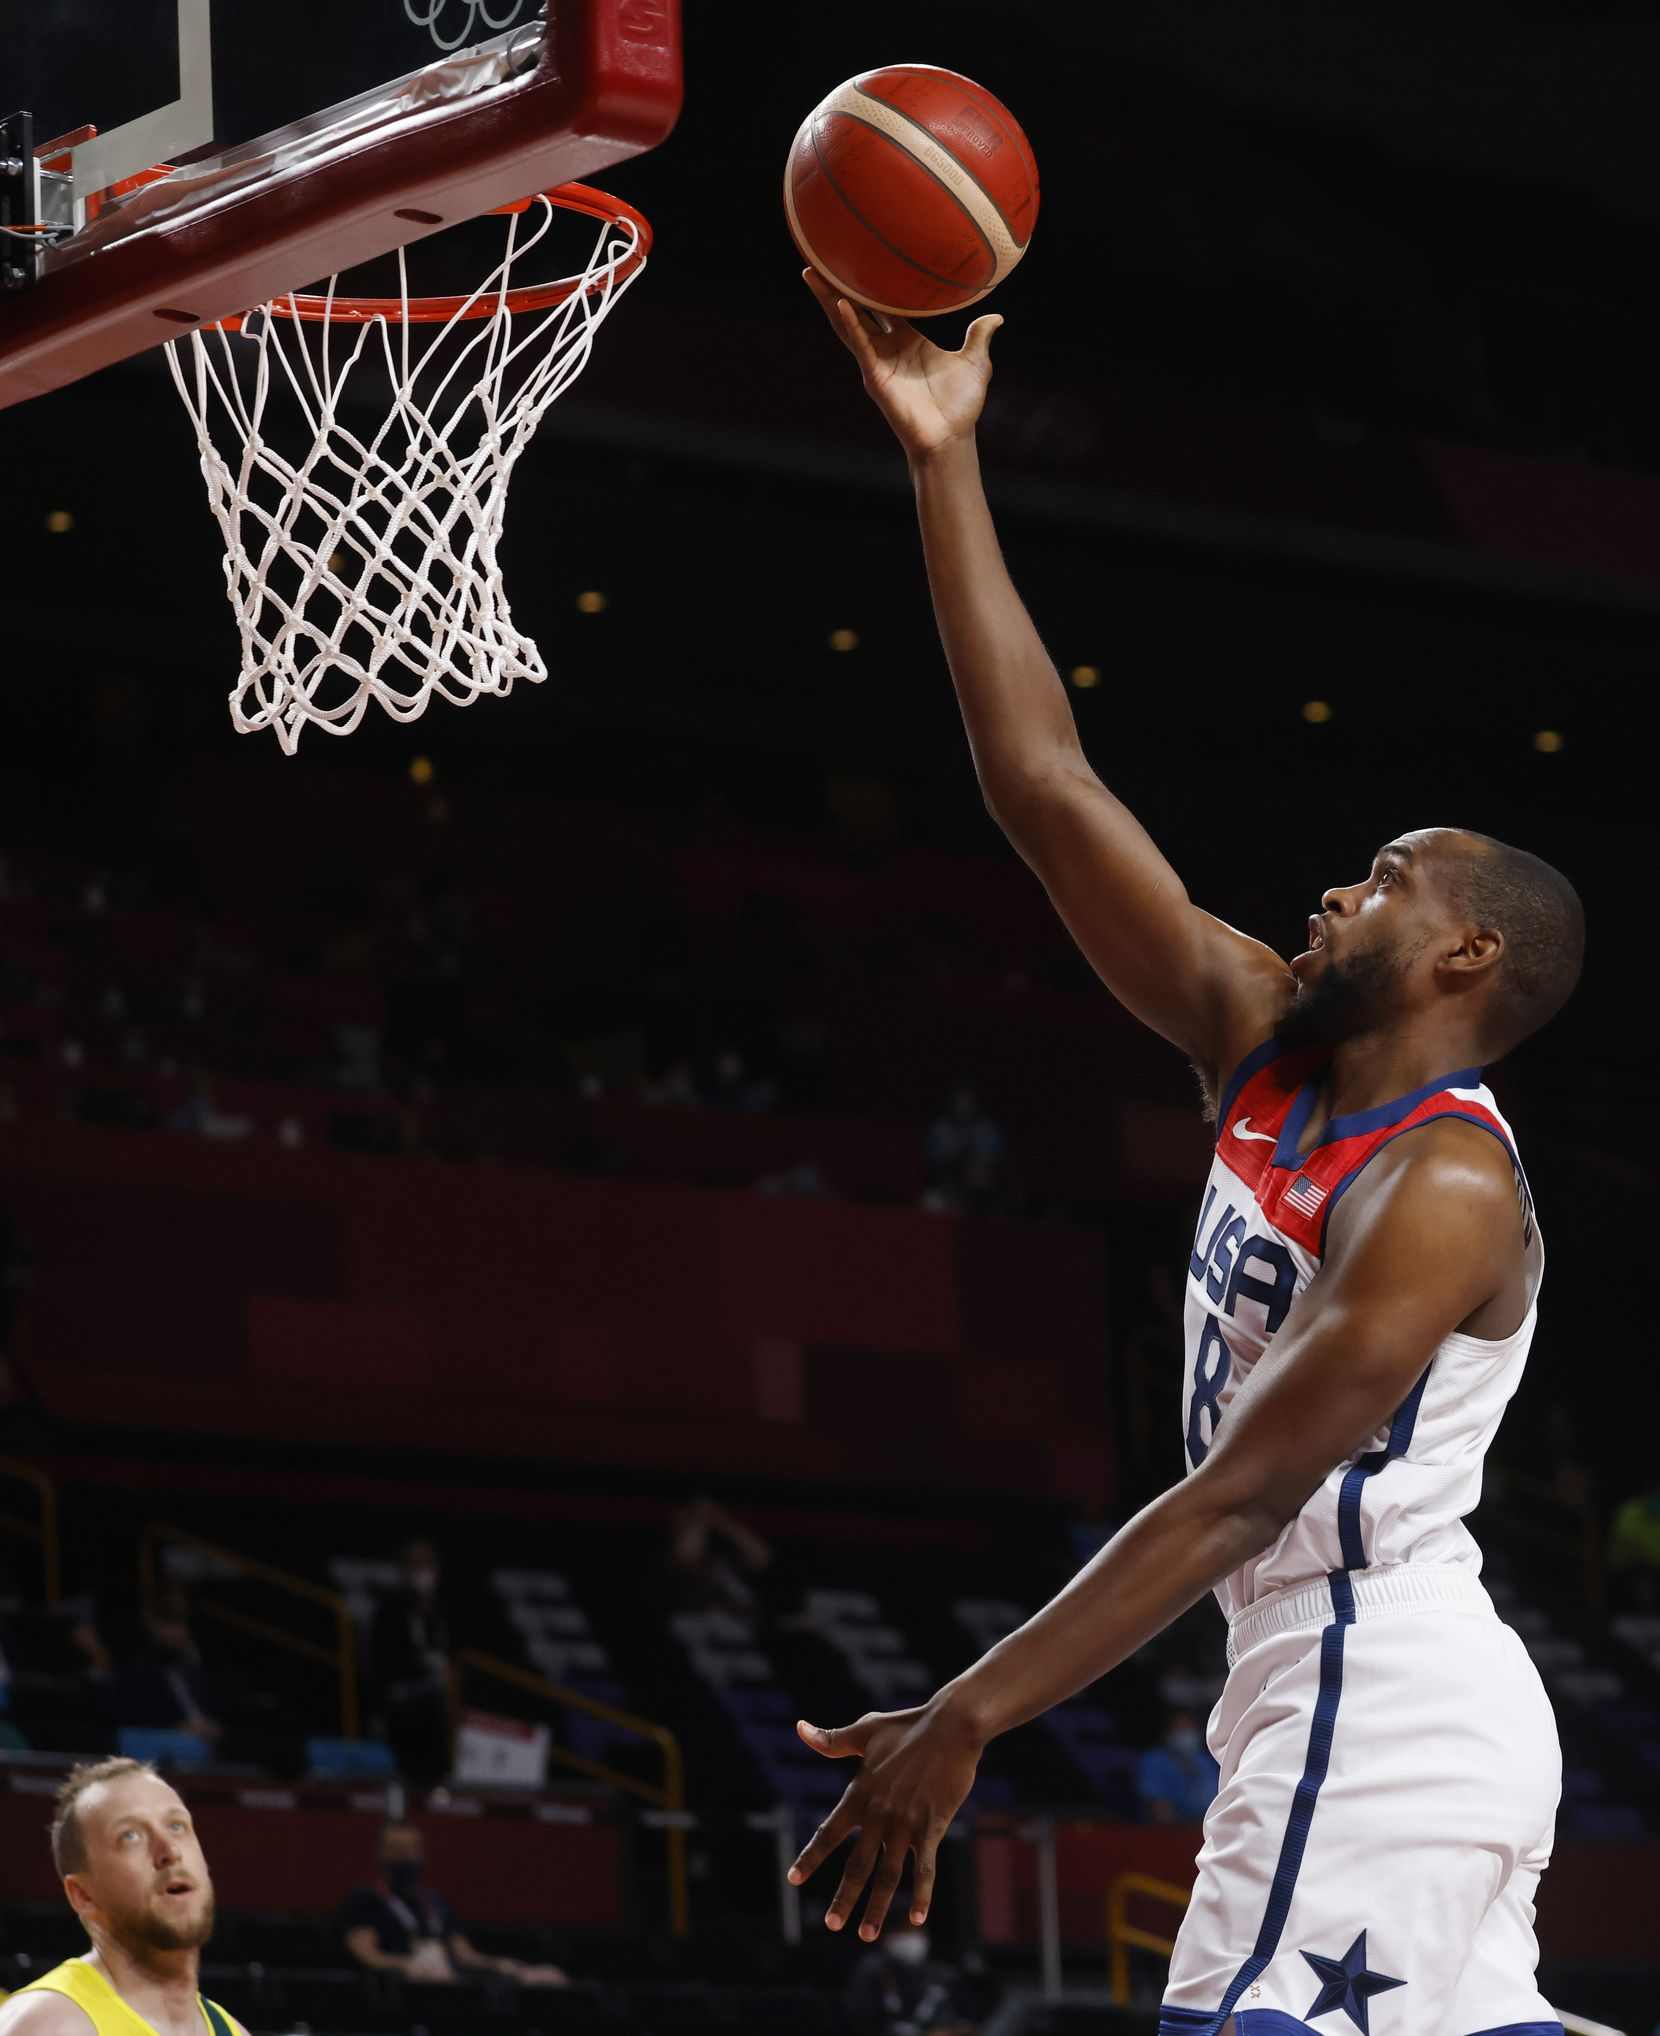 USA's Khris Middleton (8) attempts a layup in a game against Australia during the first half of a men's basketball semifinal at the postponed 2020 Tokyo Olympics at Saitama Super Arena, on Thursday, August 5, 2021, in Saitama, Japan. USA defeated Australia 97-78 to advance to the gold medal game. (Vernon Bryant/The Dallas Morning News)